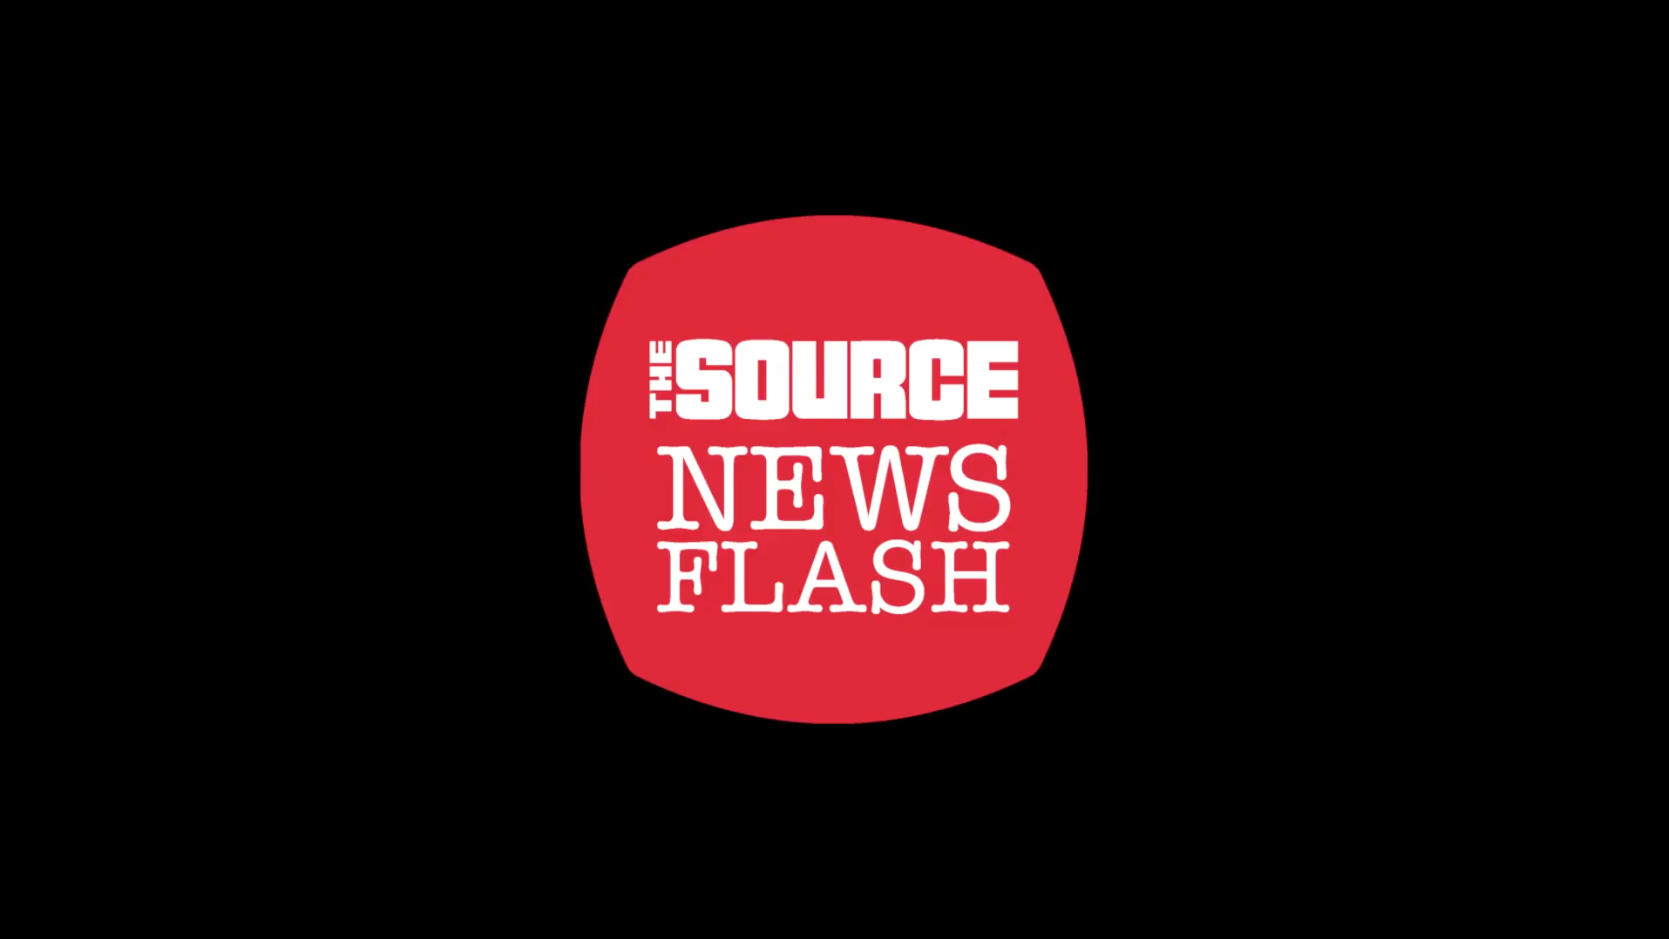 Source News Flash